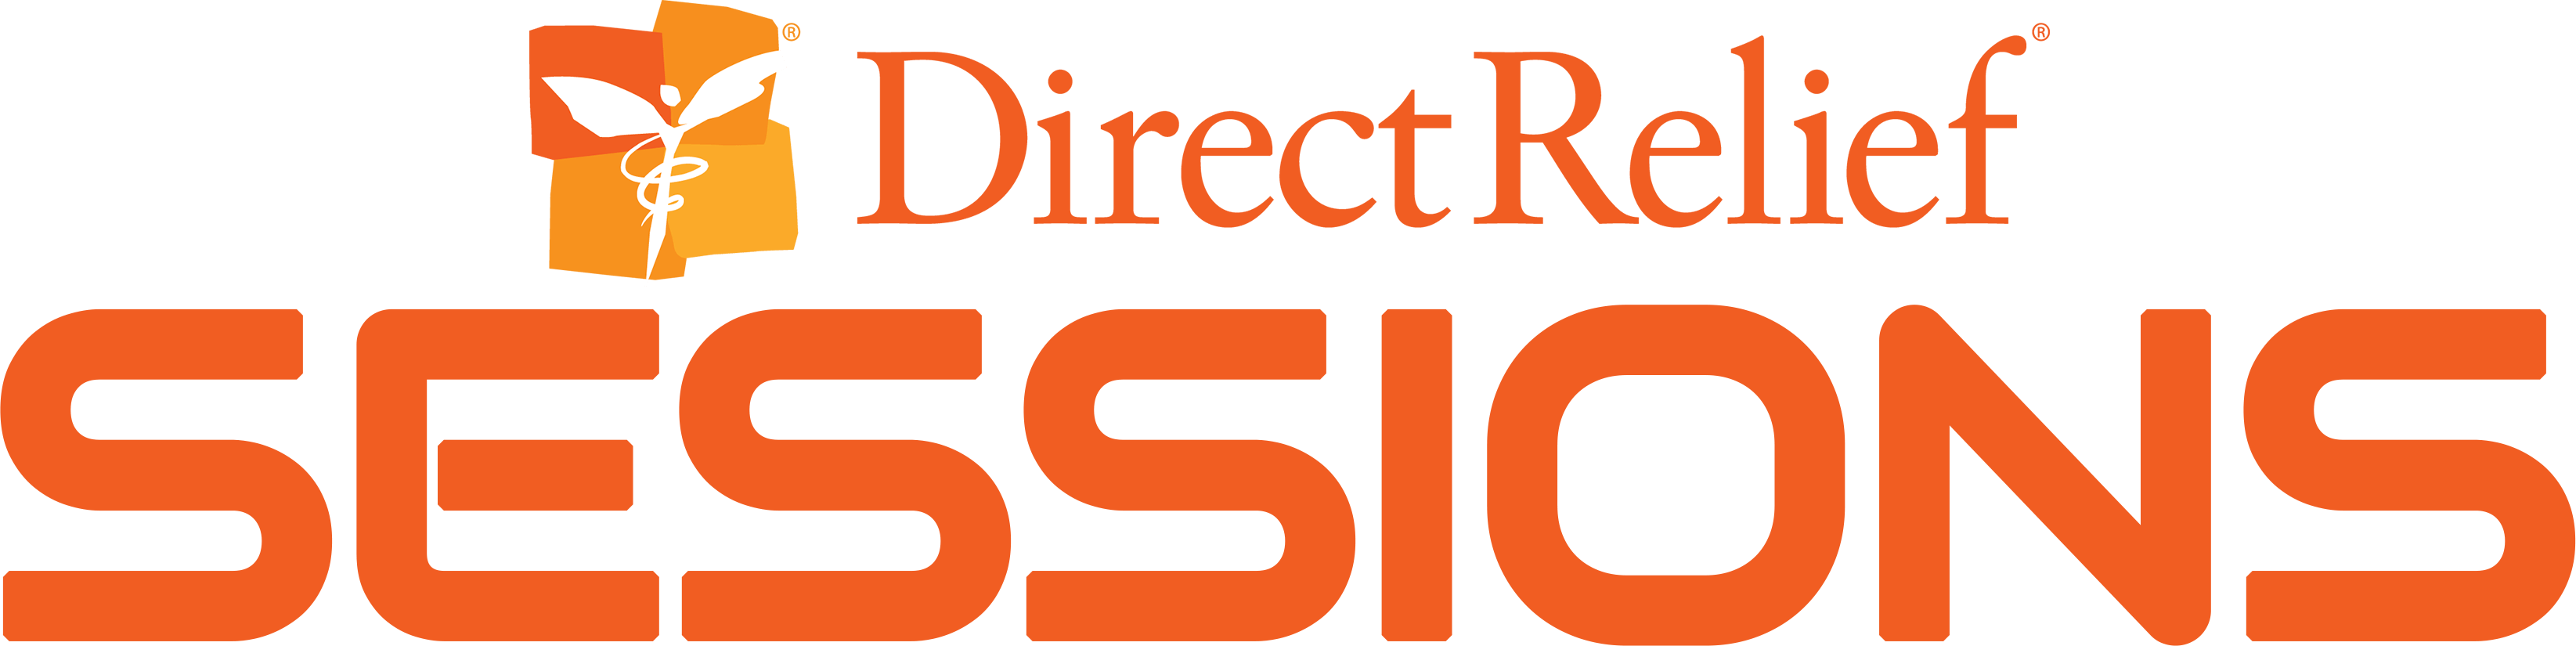 Direct Relief Sessions